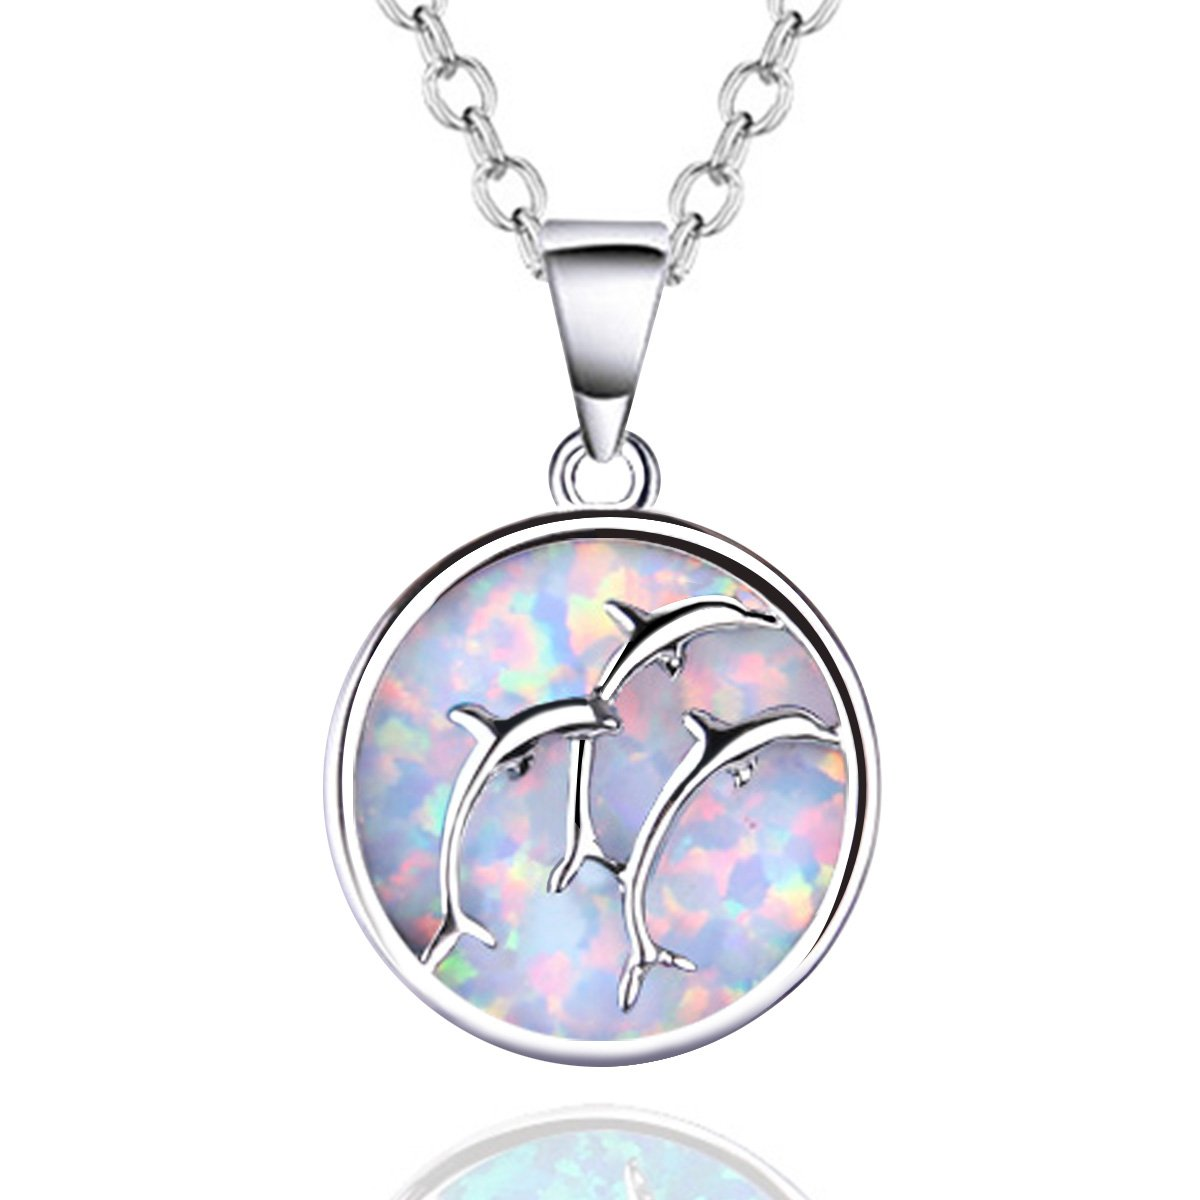 KELITCH Syuthetic Opal Choker Necklace Dolphin Pendant with 16-18'' Chain Necklace (White)